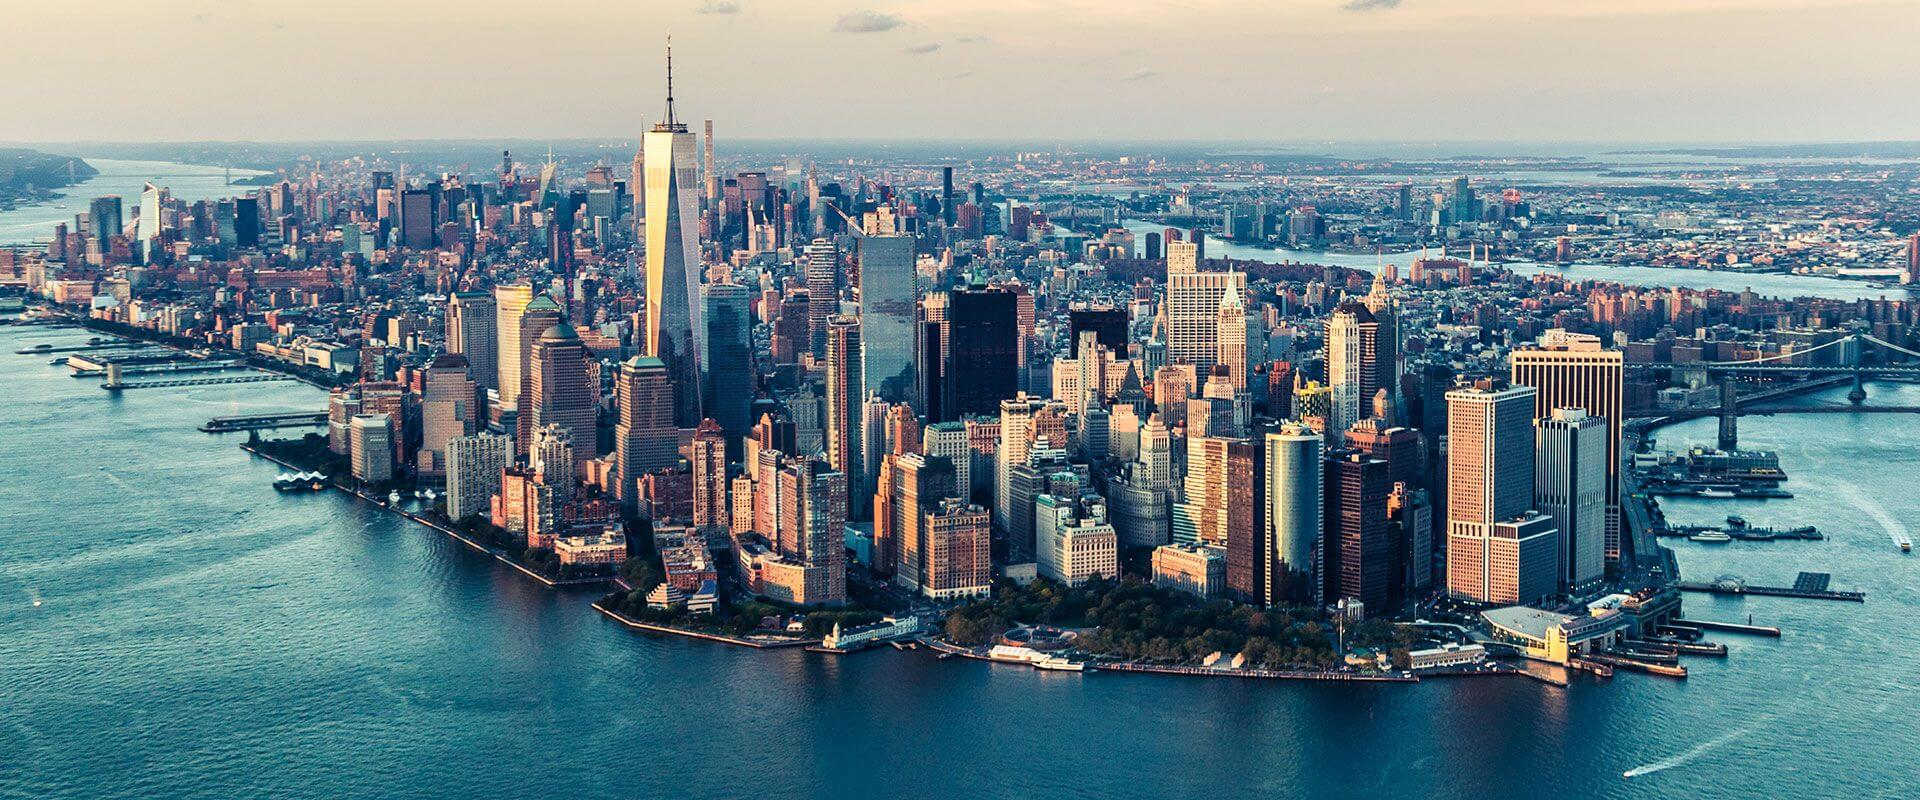 smart-city-new-york.jpg